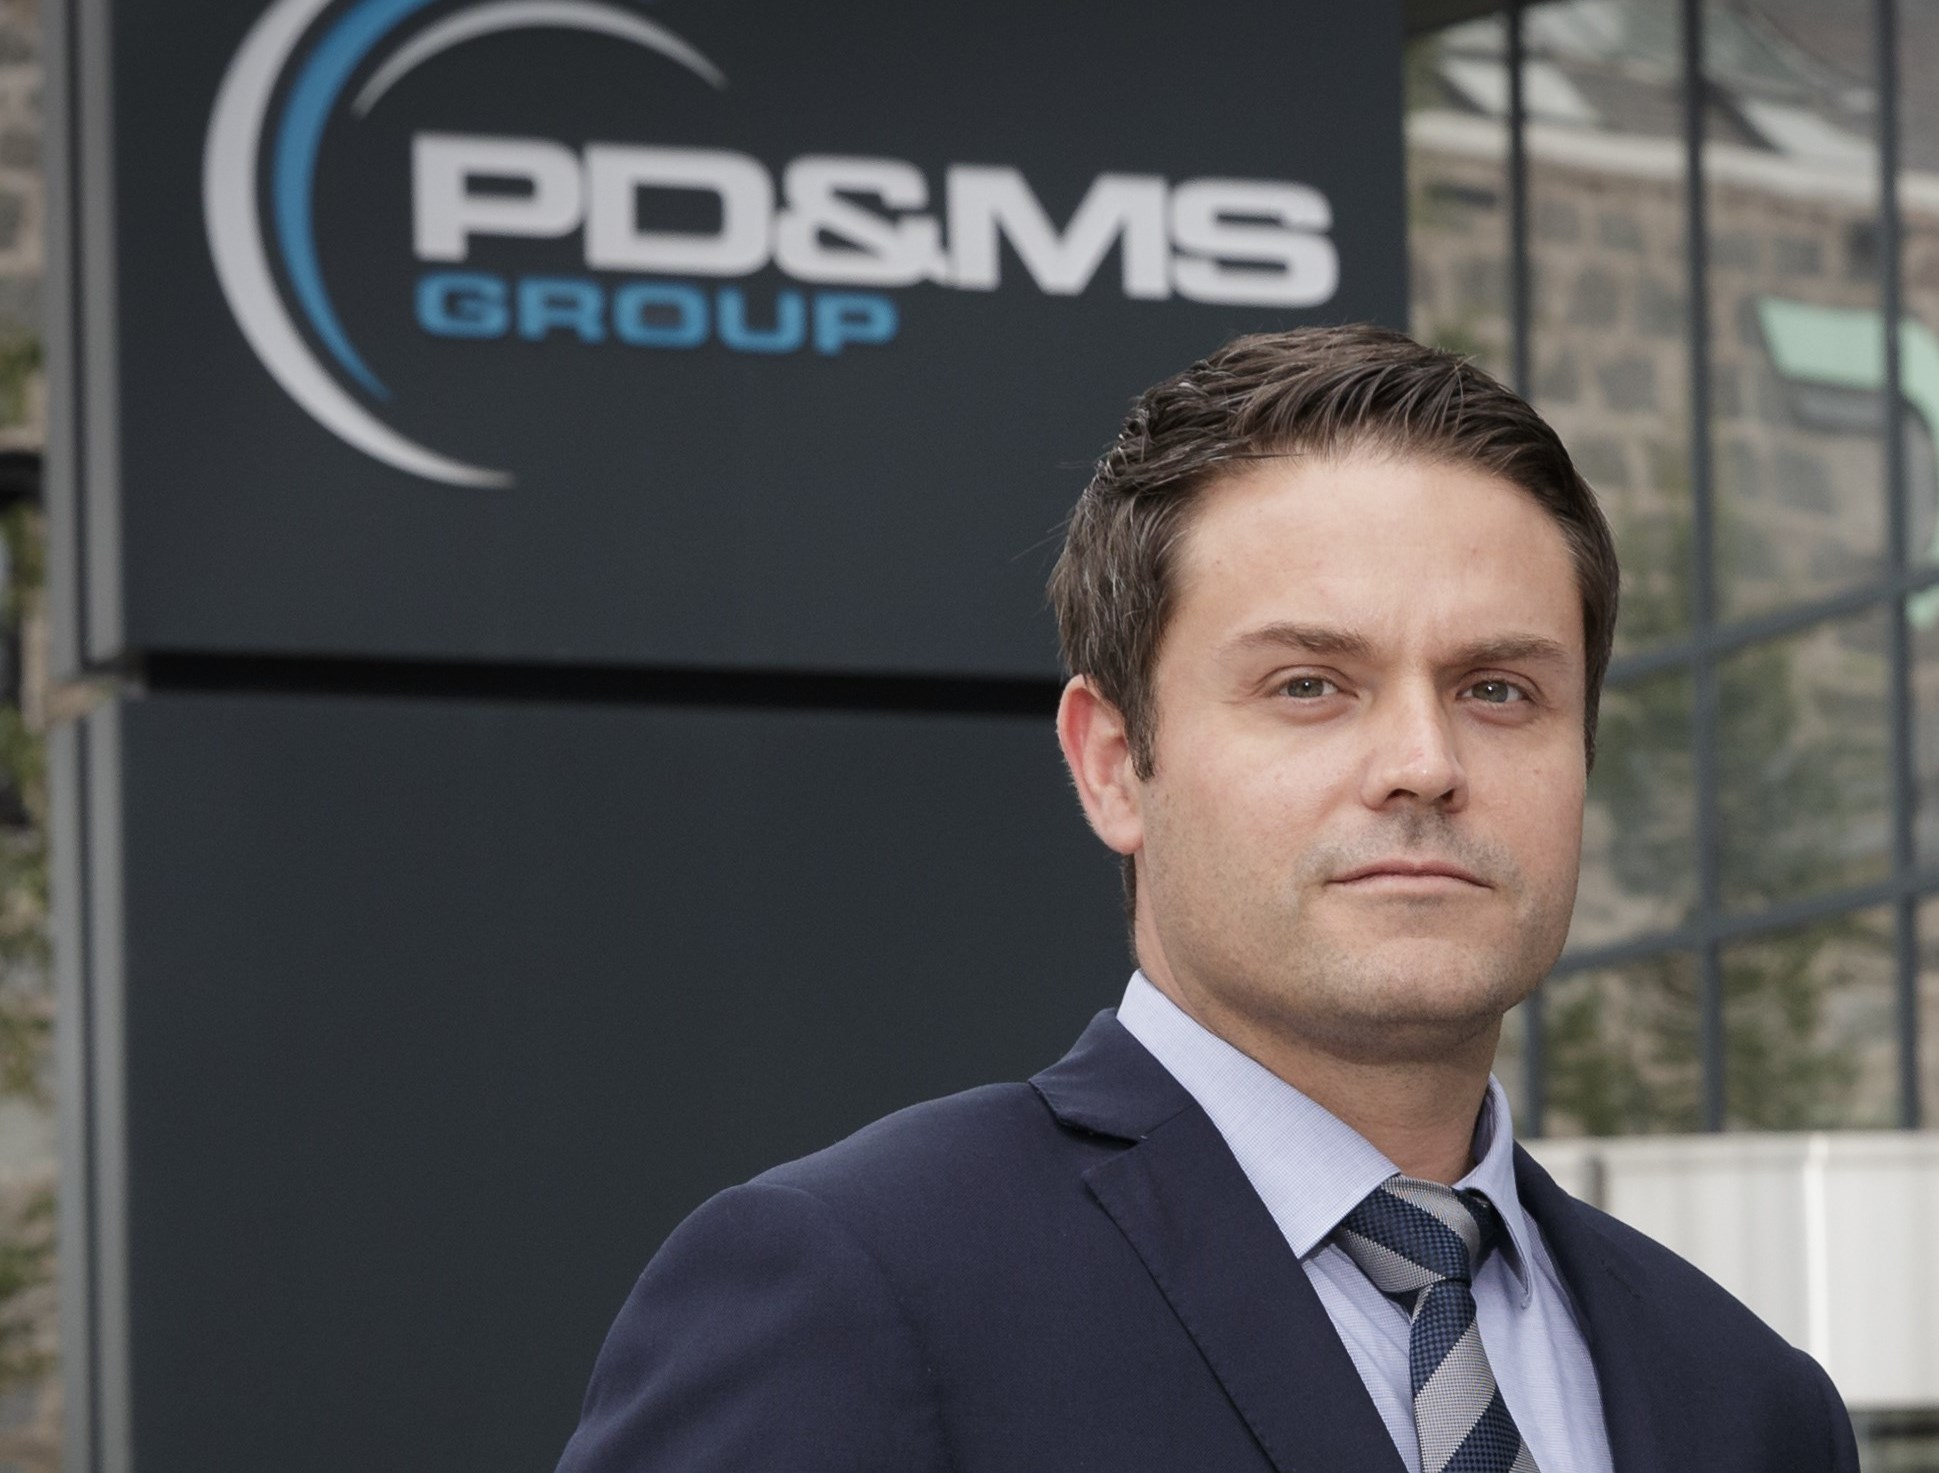 Simon Rio, PD&MS Group chief executive.